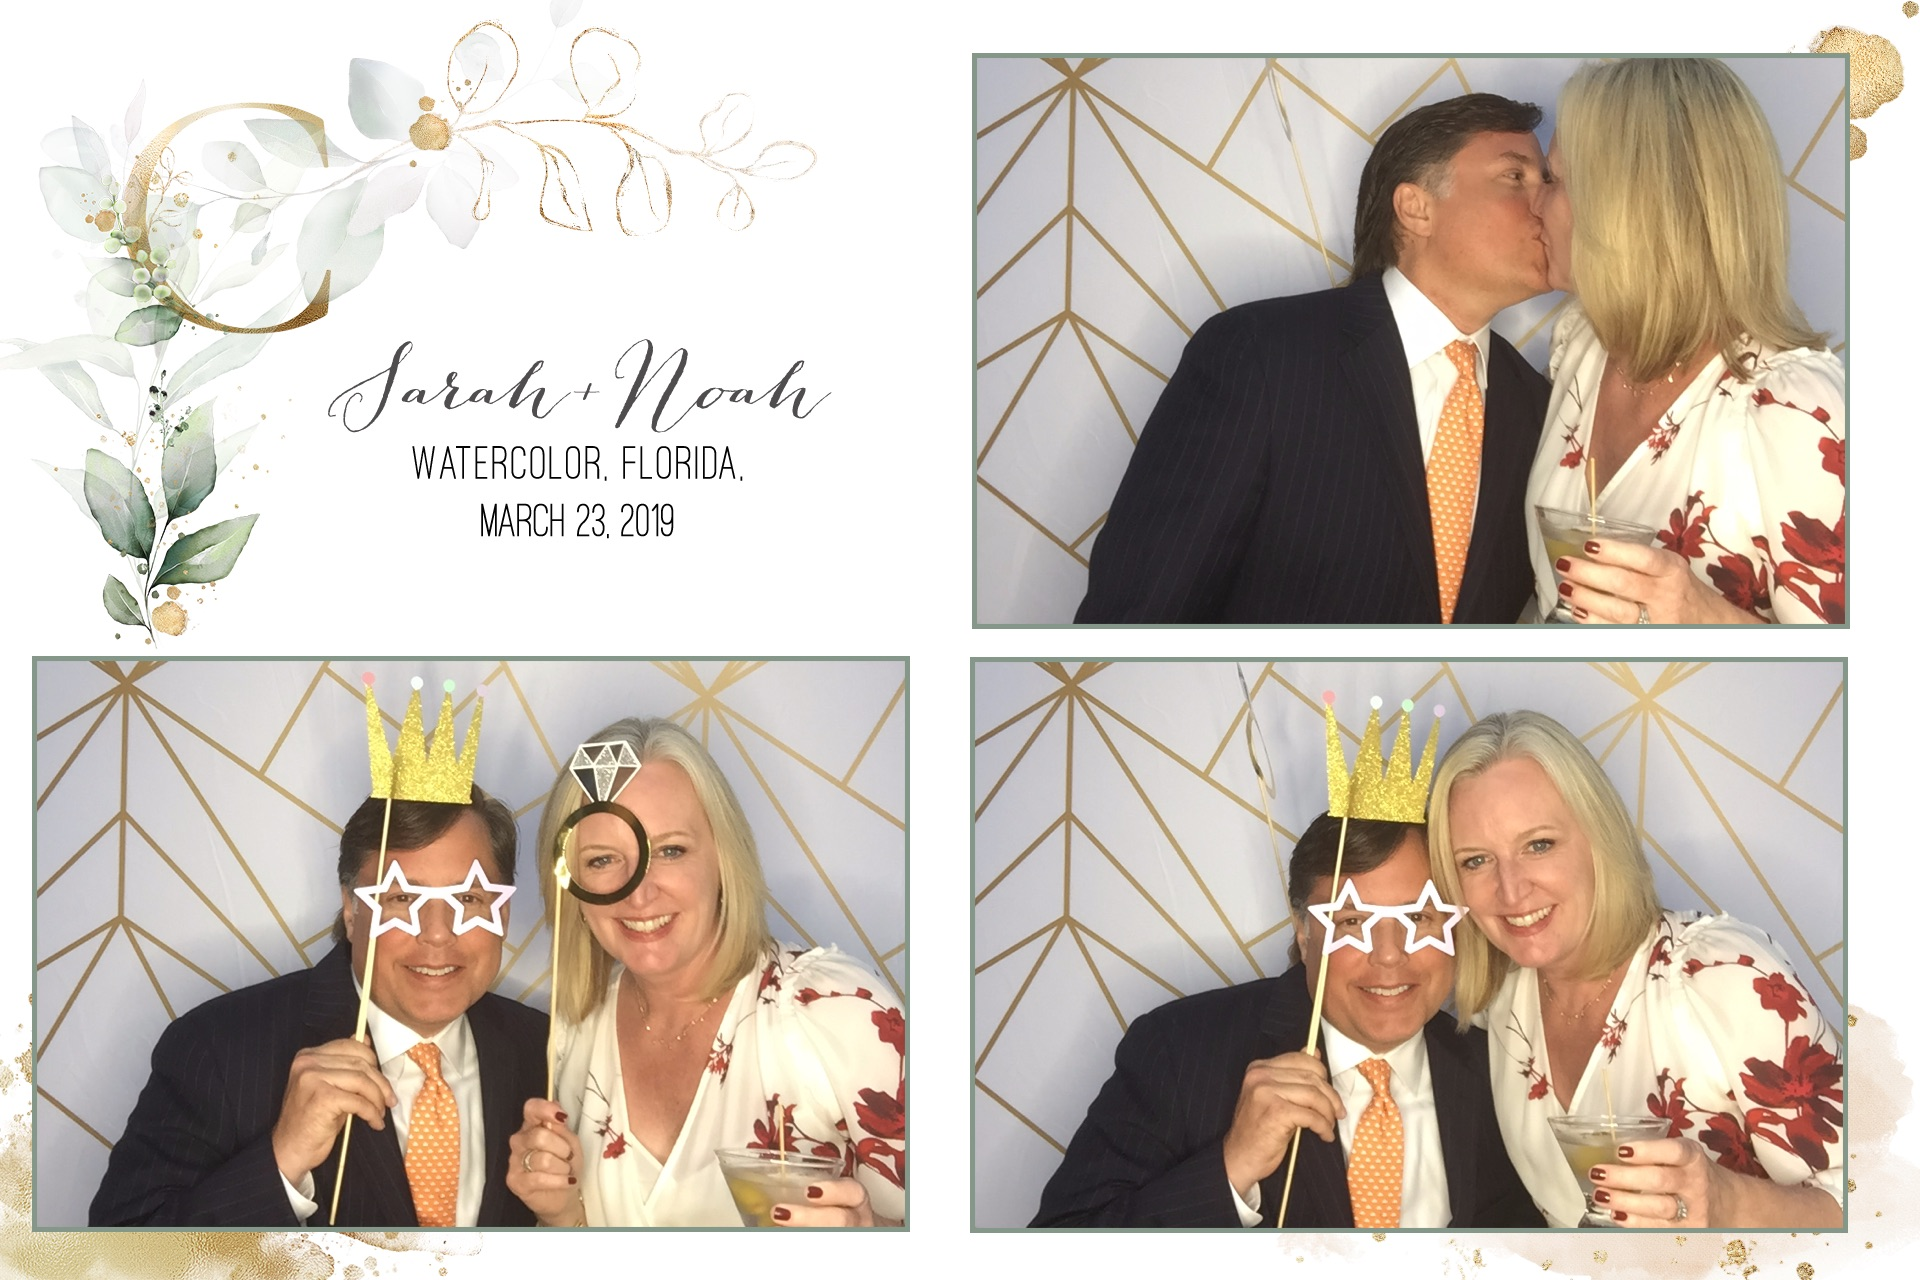 event photo booth rental